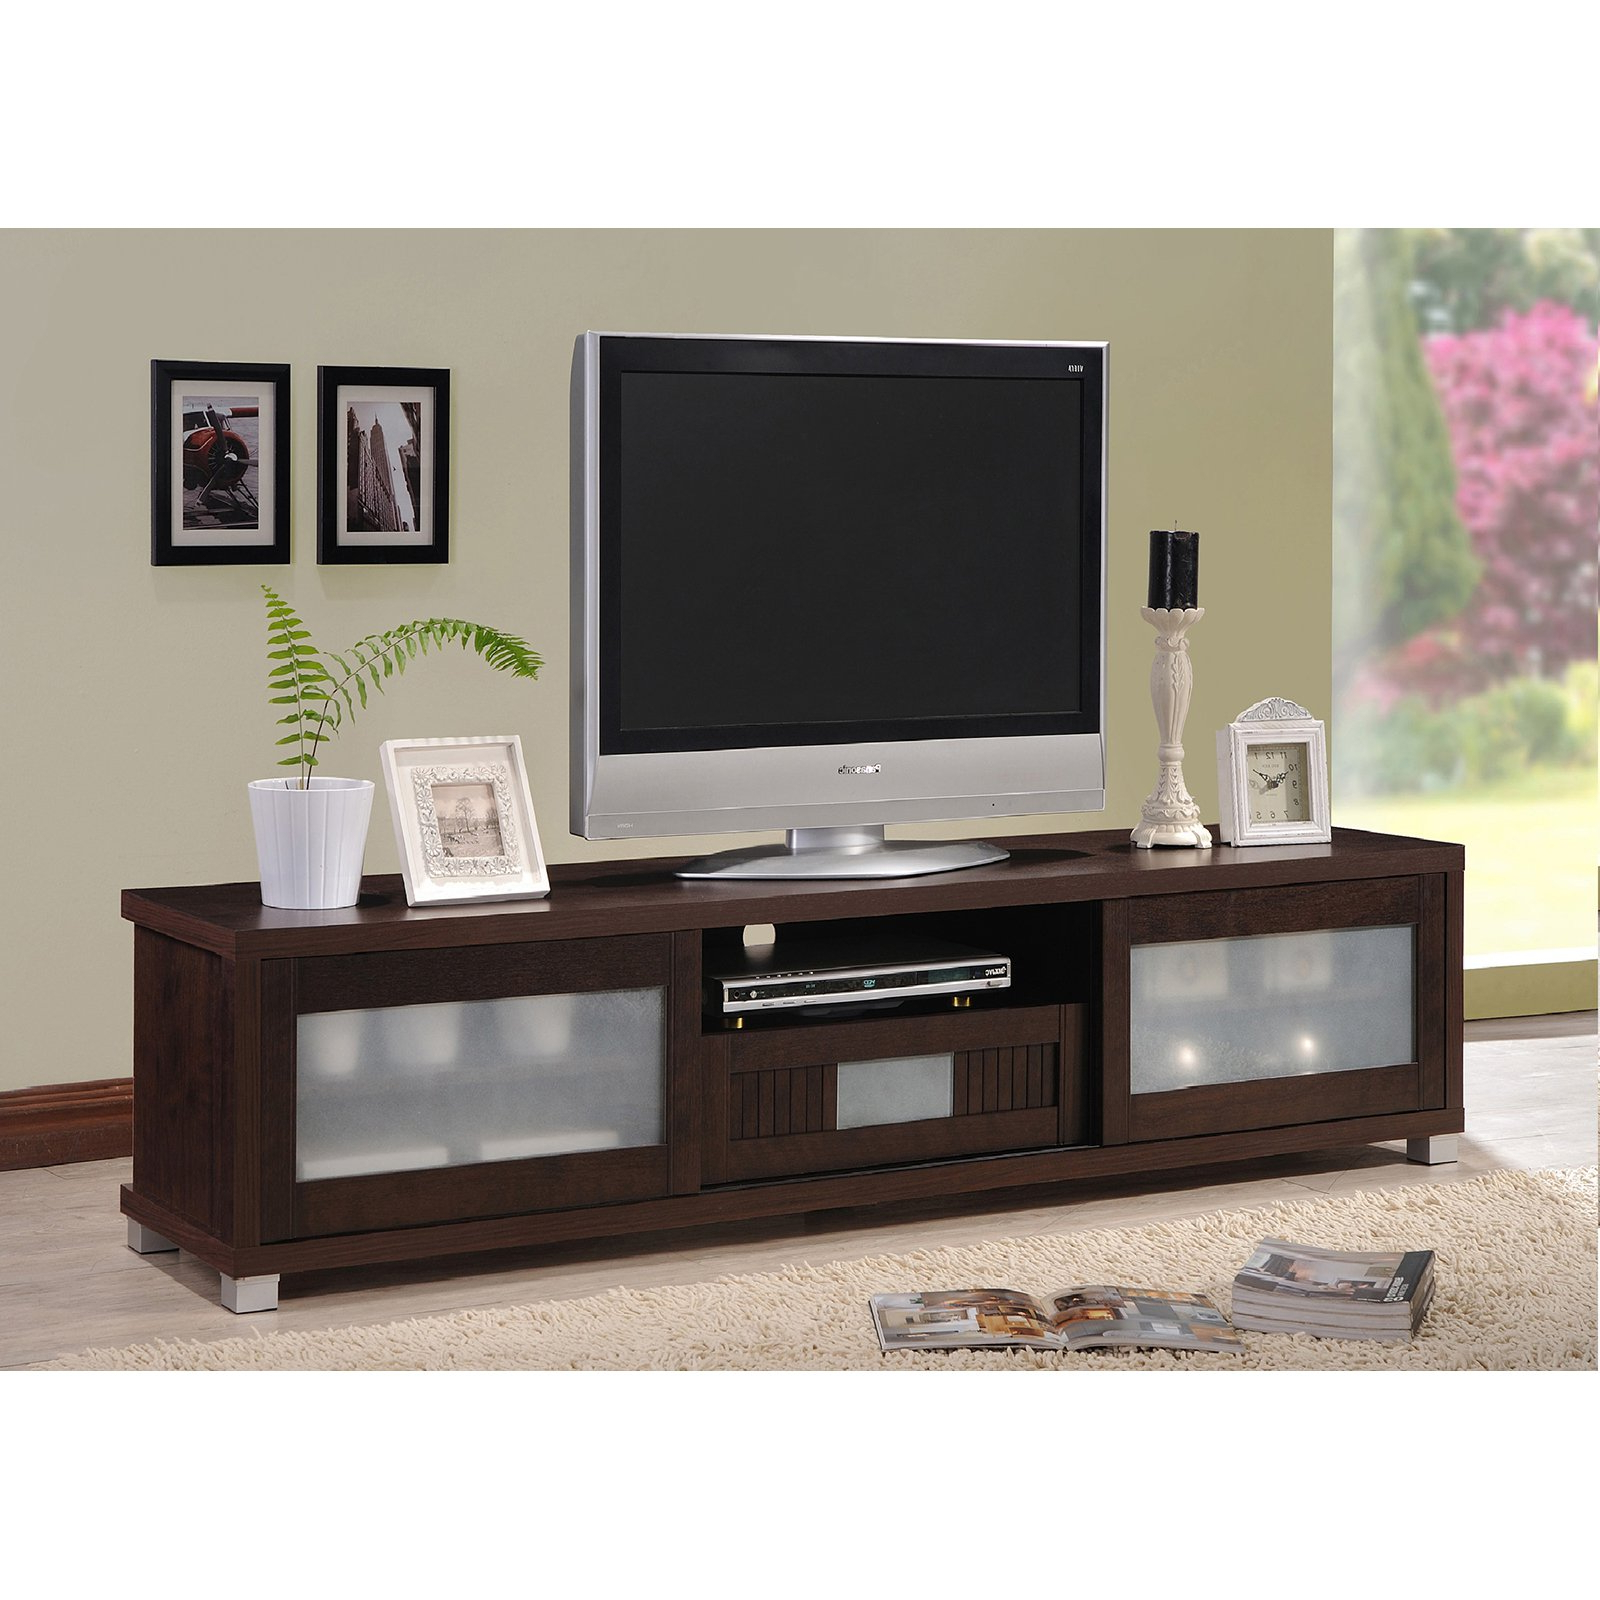 Baxton Studio Gerhardine Dark Brown Wood 70 Inch Tv Cabinet With 2 Inside Most Up To Date Wenge Tv Cabinets (View 2 of 20)